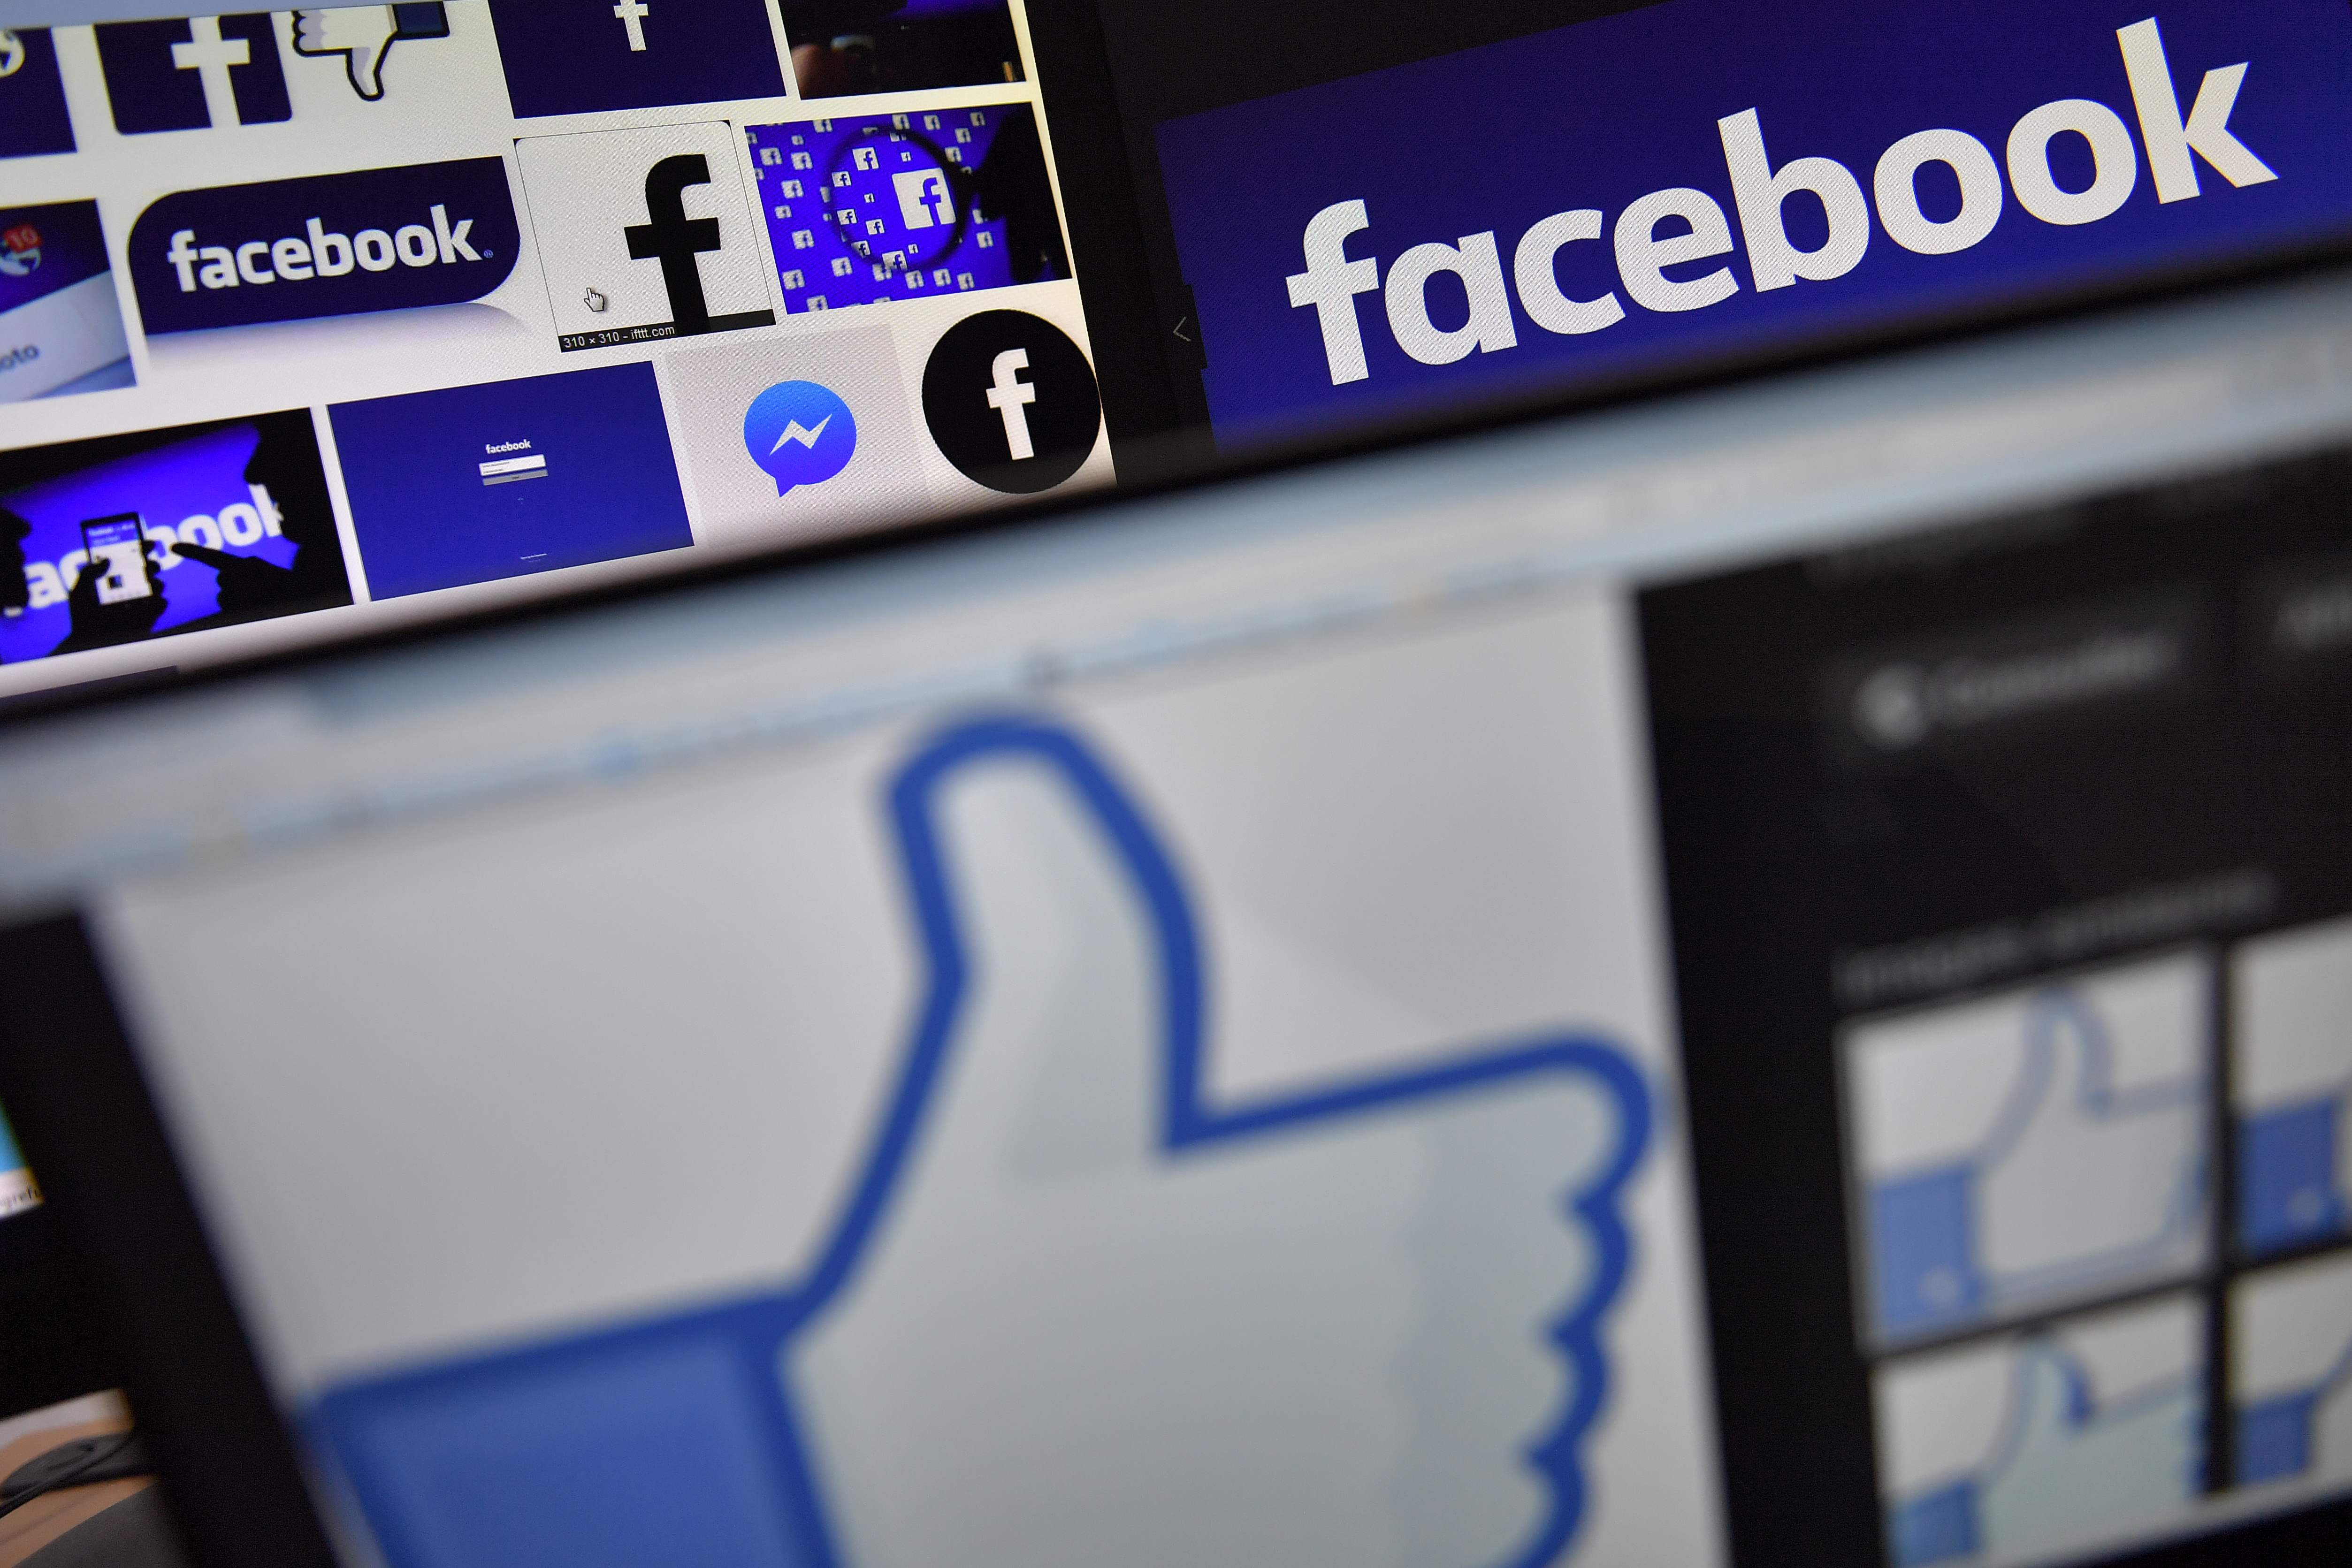 Facebook's facial recognition violates user privacy, watchdog groups plan to tell FTC